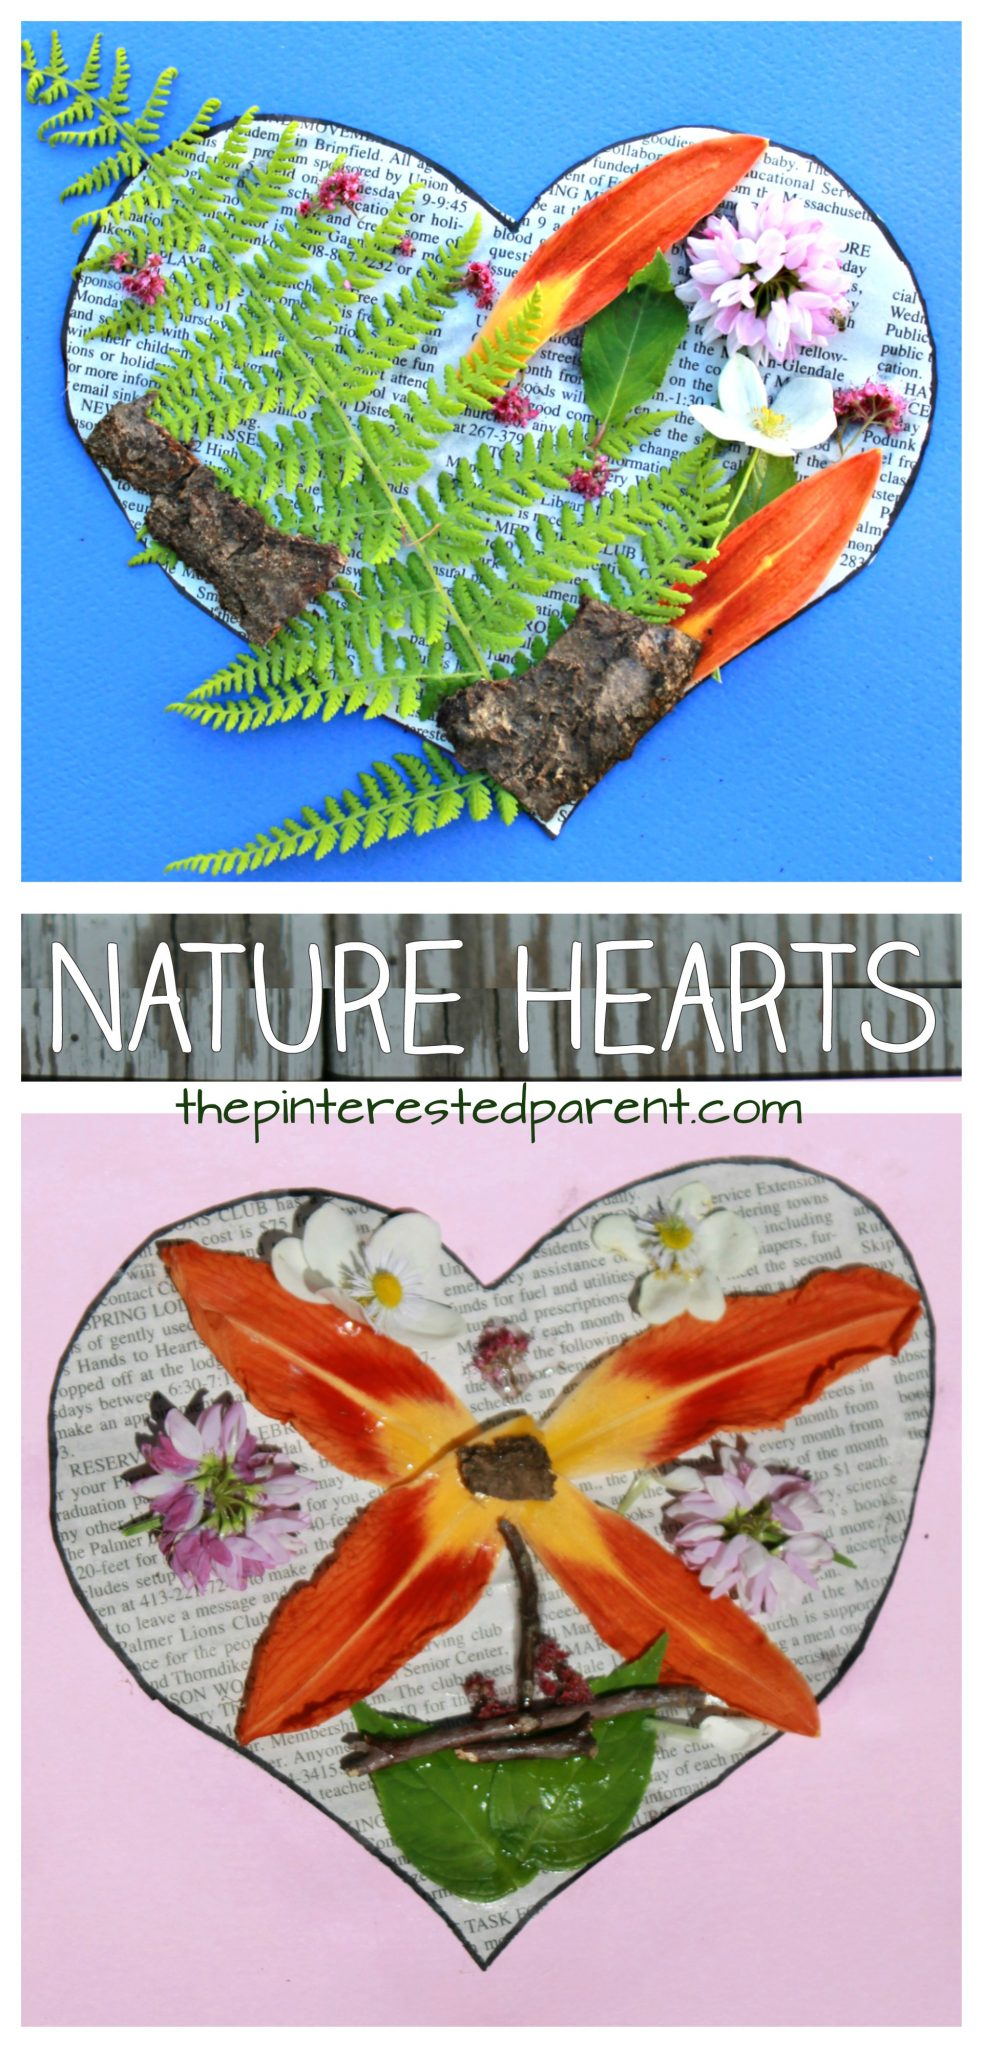 Nature Hearts Art The Pinterested Parent